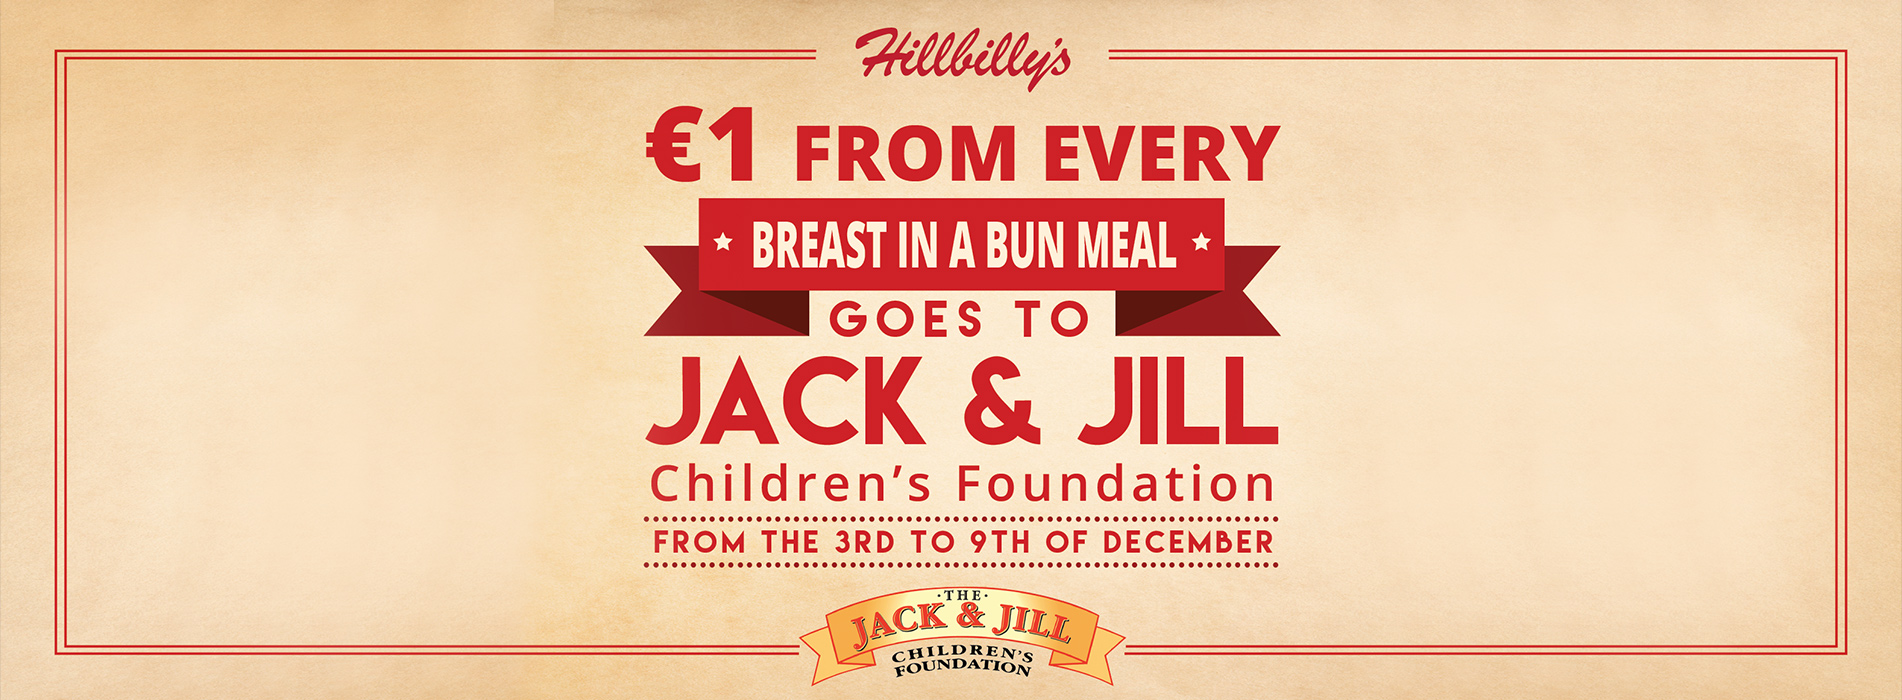 €1 From Every Breast in a Bun Goes to Jack & Jill